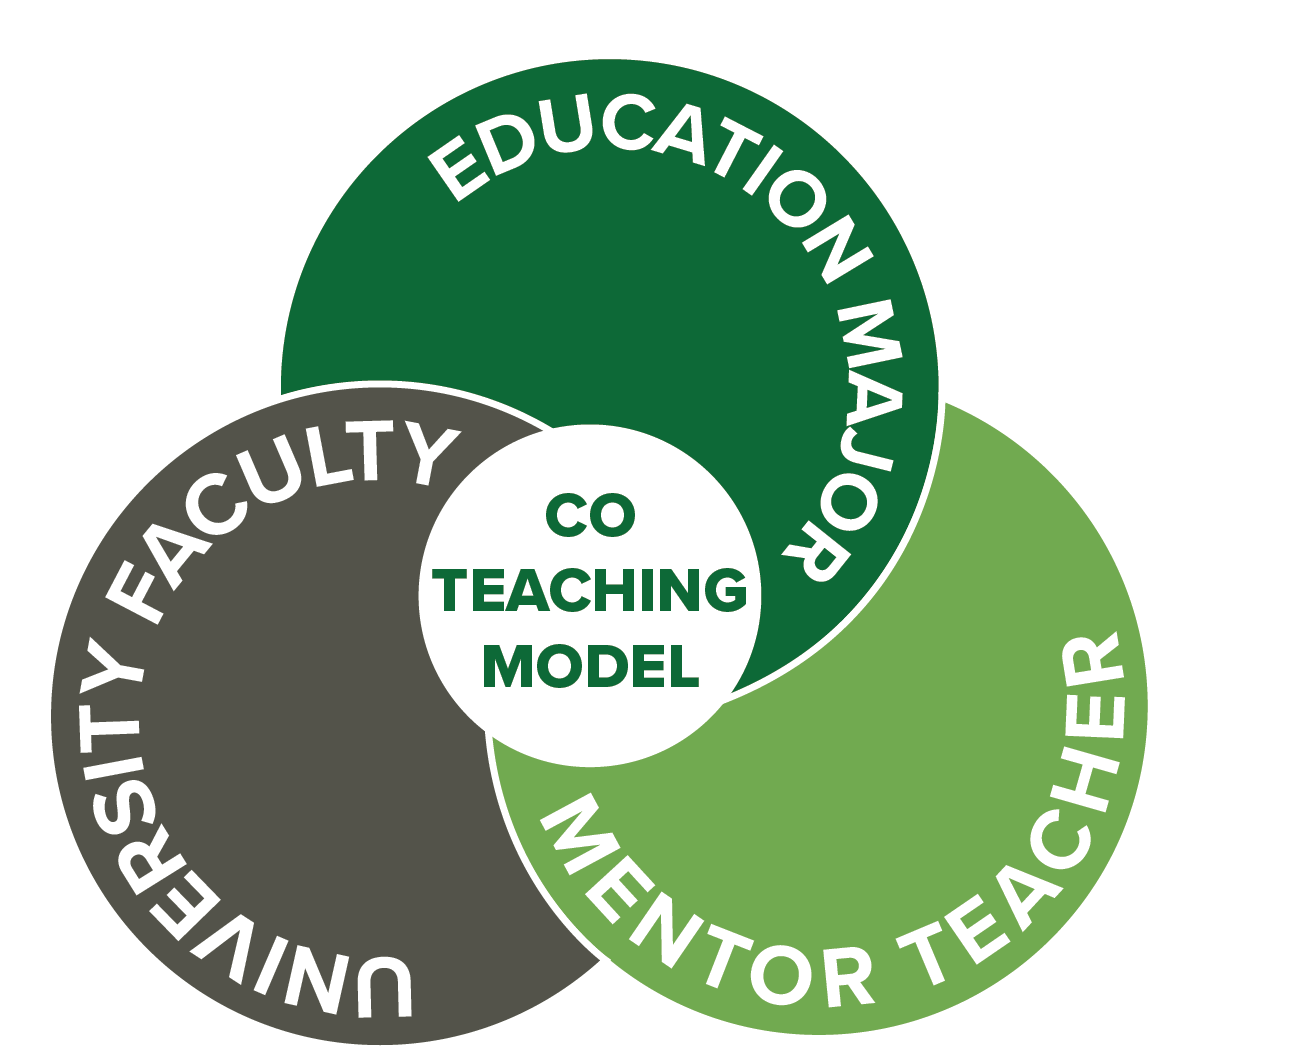 Co teaching infographic with three circles representing teacher, ed major and faculty